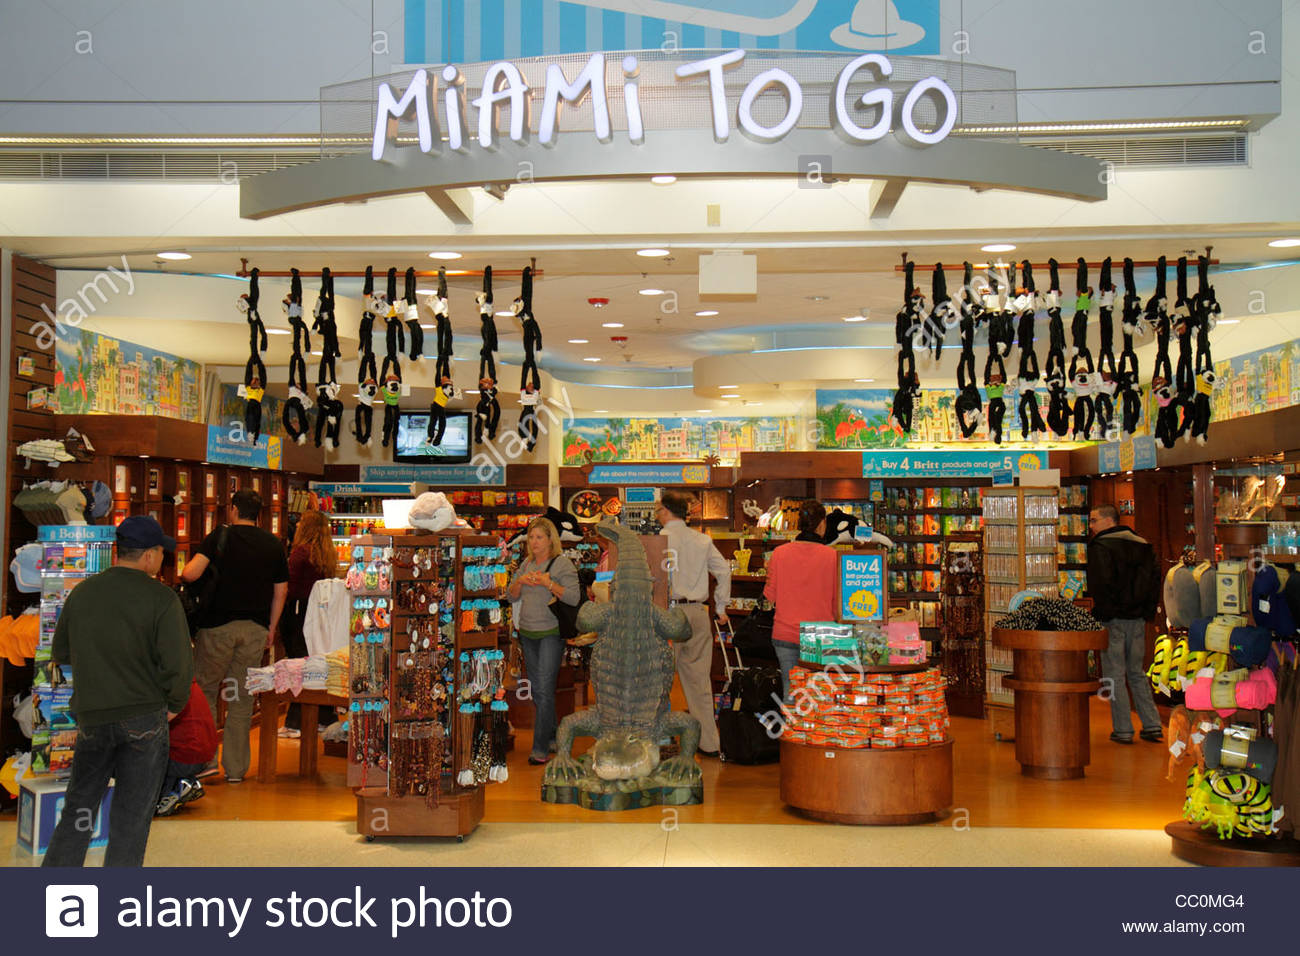 Miami Airport - Shopping If you have time to kill, check out some of the Miami Airport shops. Here's a guide to Miami Airport shopping, detailed with locations, hours and phone numbers.